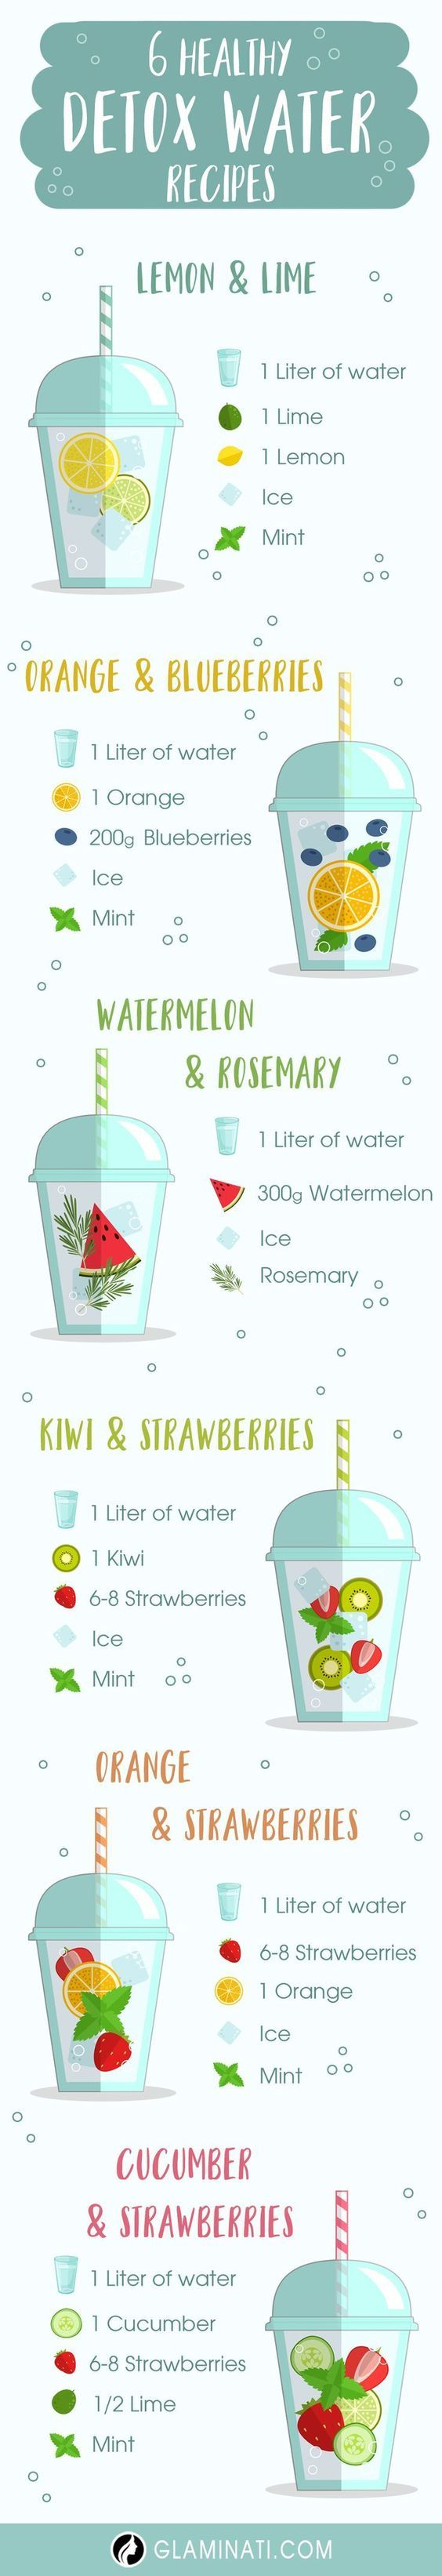 Hmmmm... Educating. Are you thinking about loosing some weight? This infographic is about top detox drink that can help loose weight. I found out that adding detox drinks to your daily diet will definitely help burn that fat. Let's get it over with by adding a bit of detox drink to our daily diet. Are you with me or not?